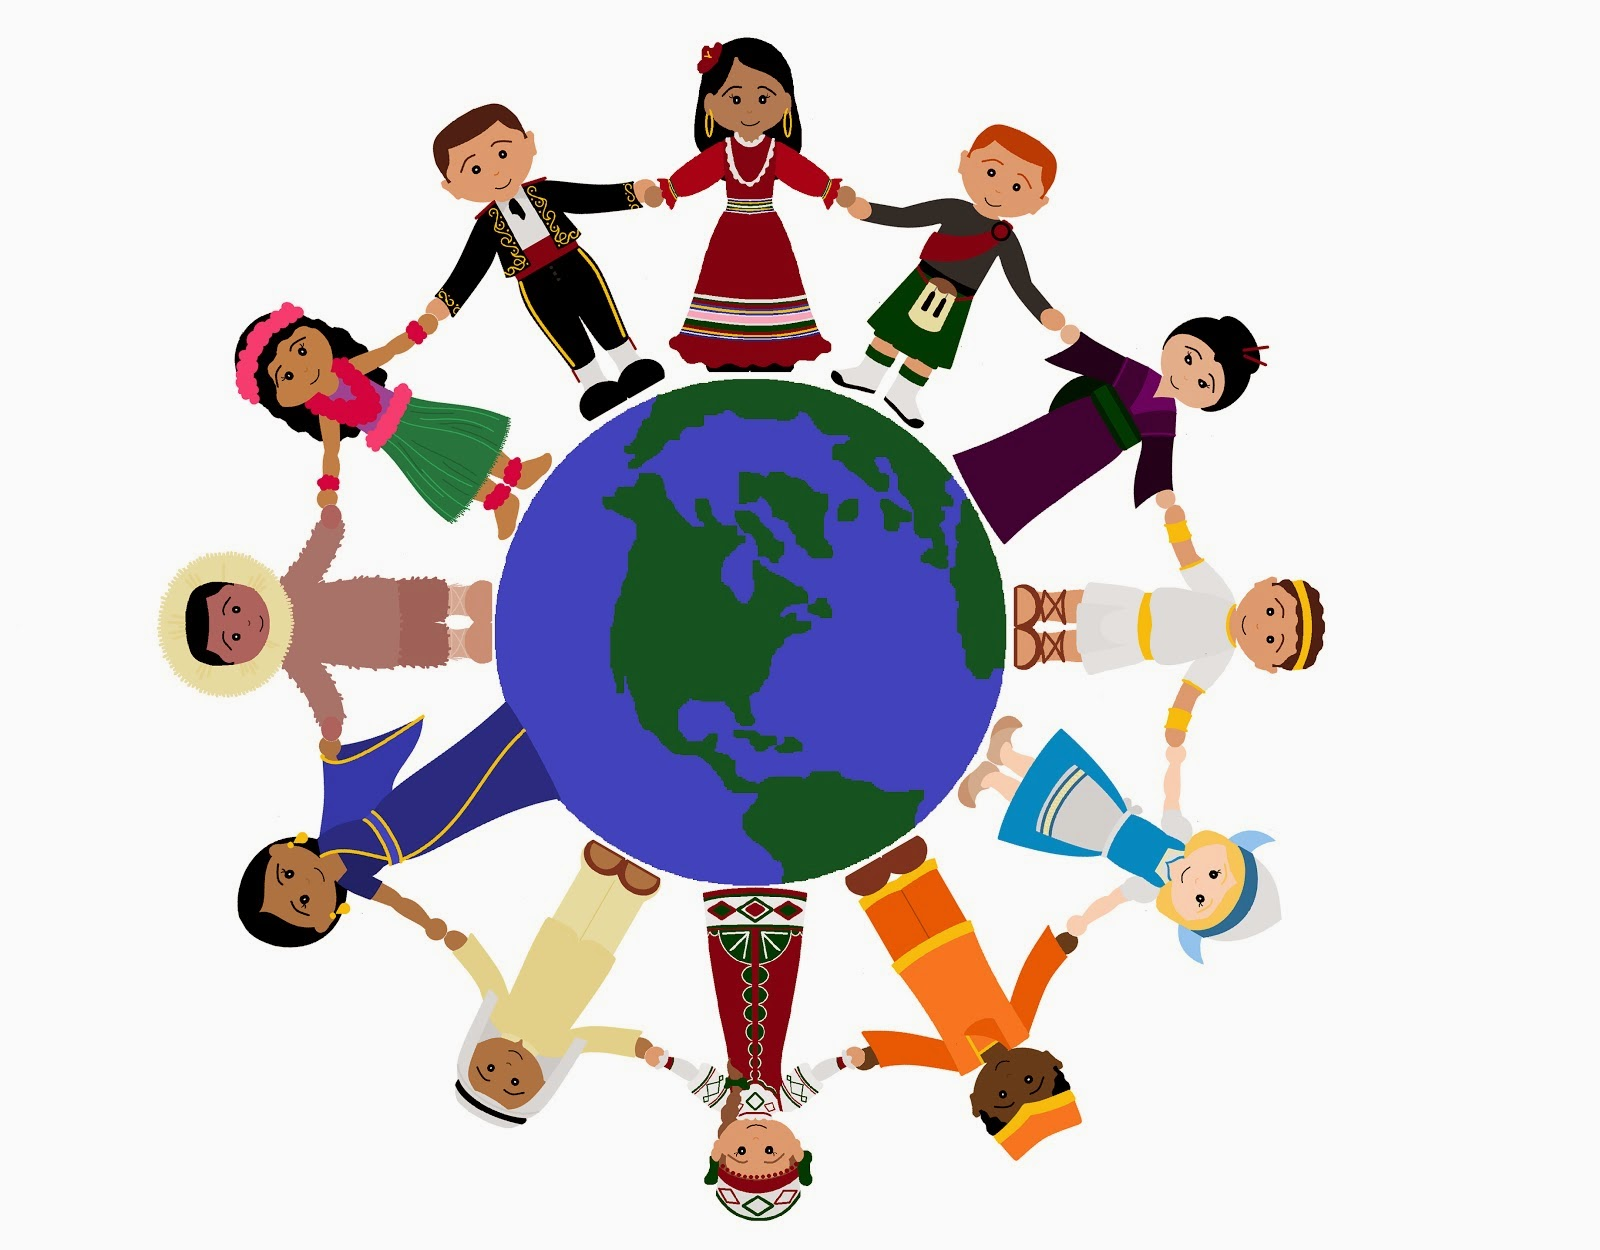 Internet effects on global citizenship and multicultural understanding